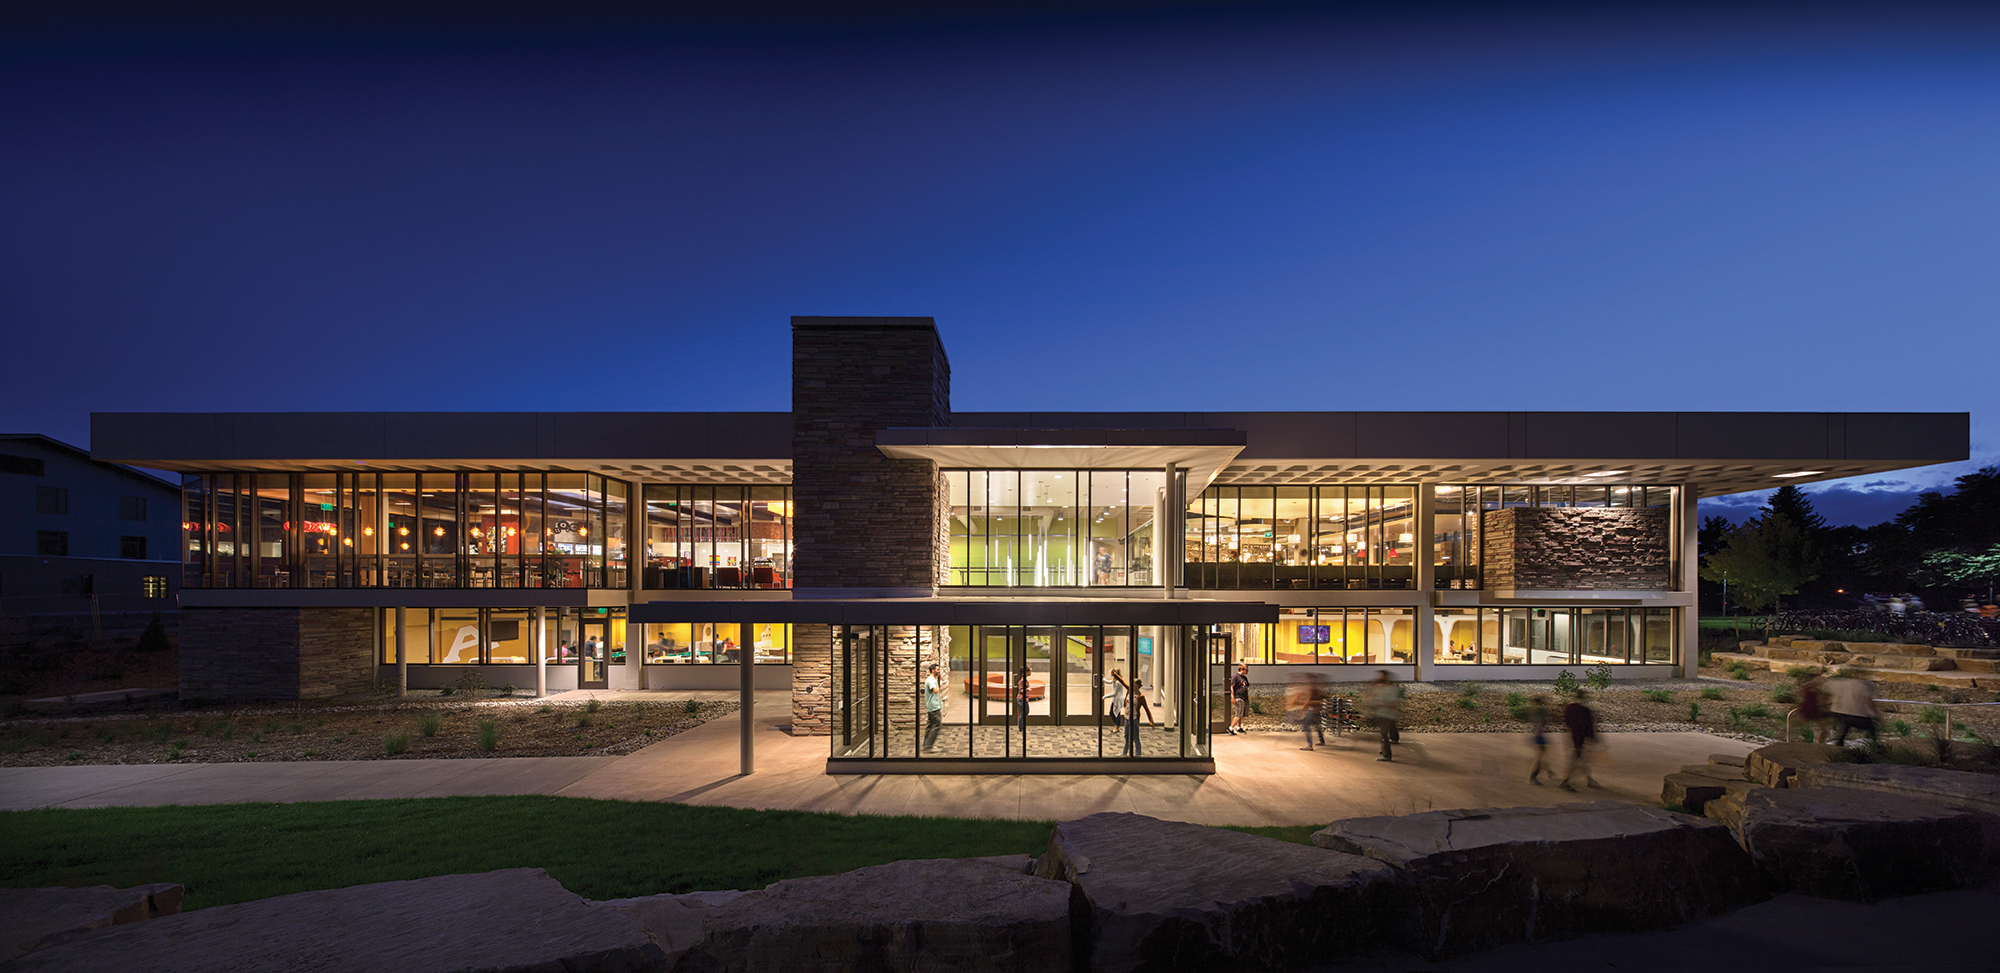 colorado_state_university_fort_collins_durrell_center_dusk_exterior.jpg